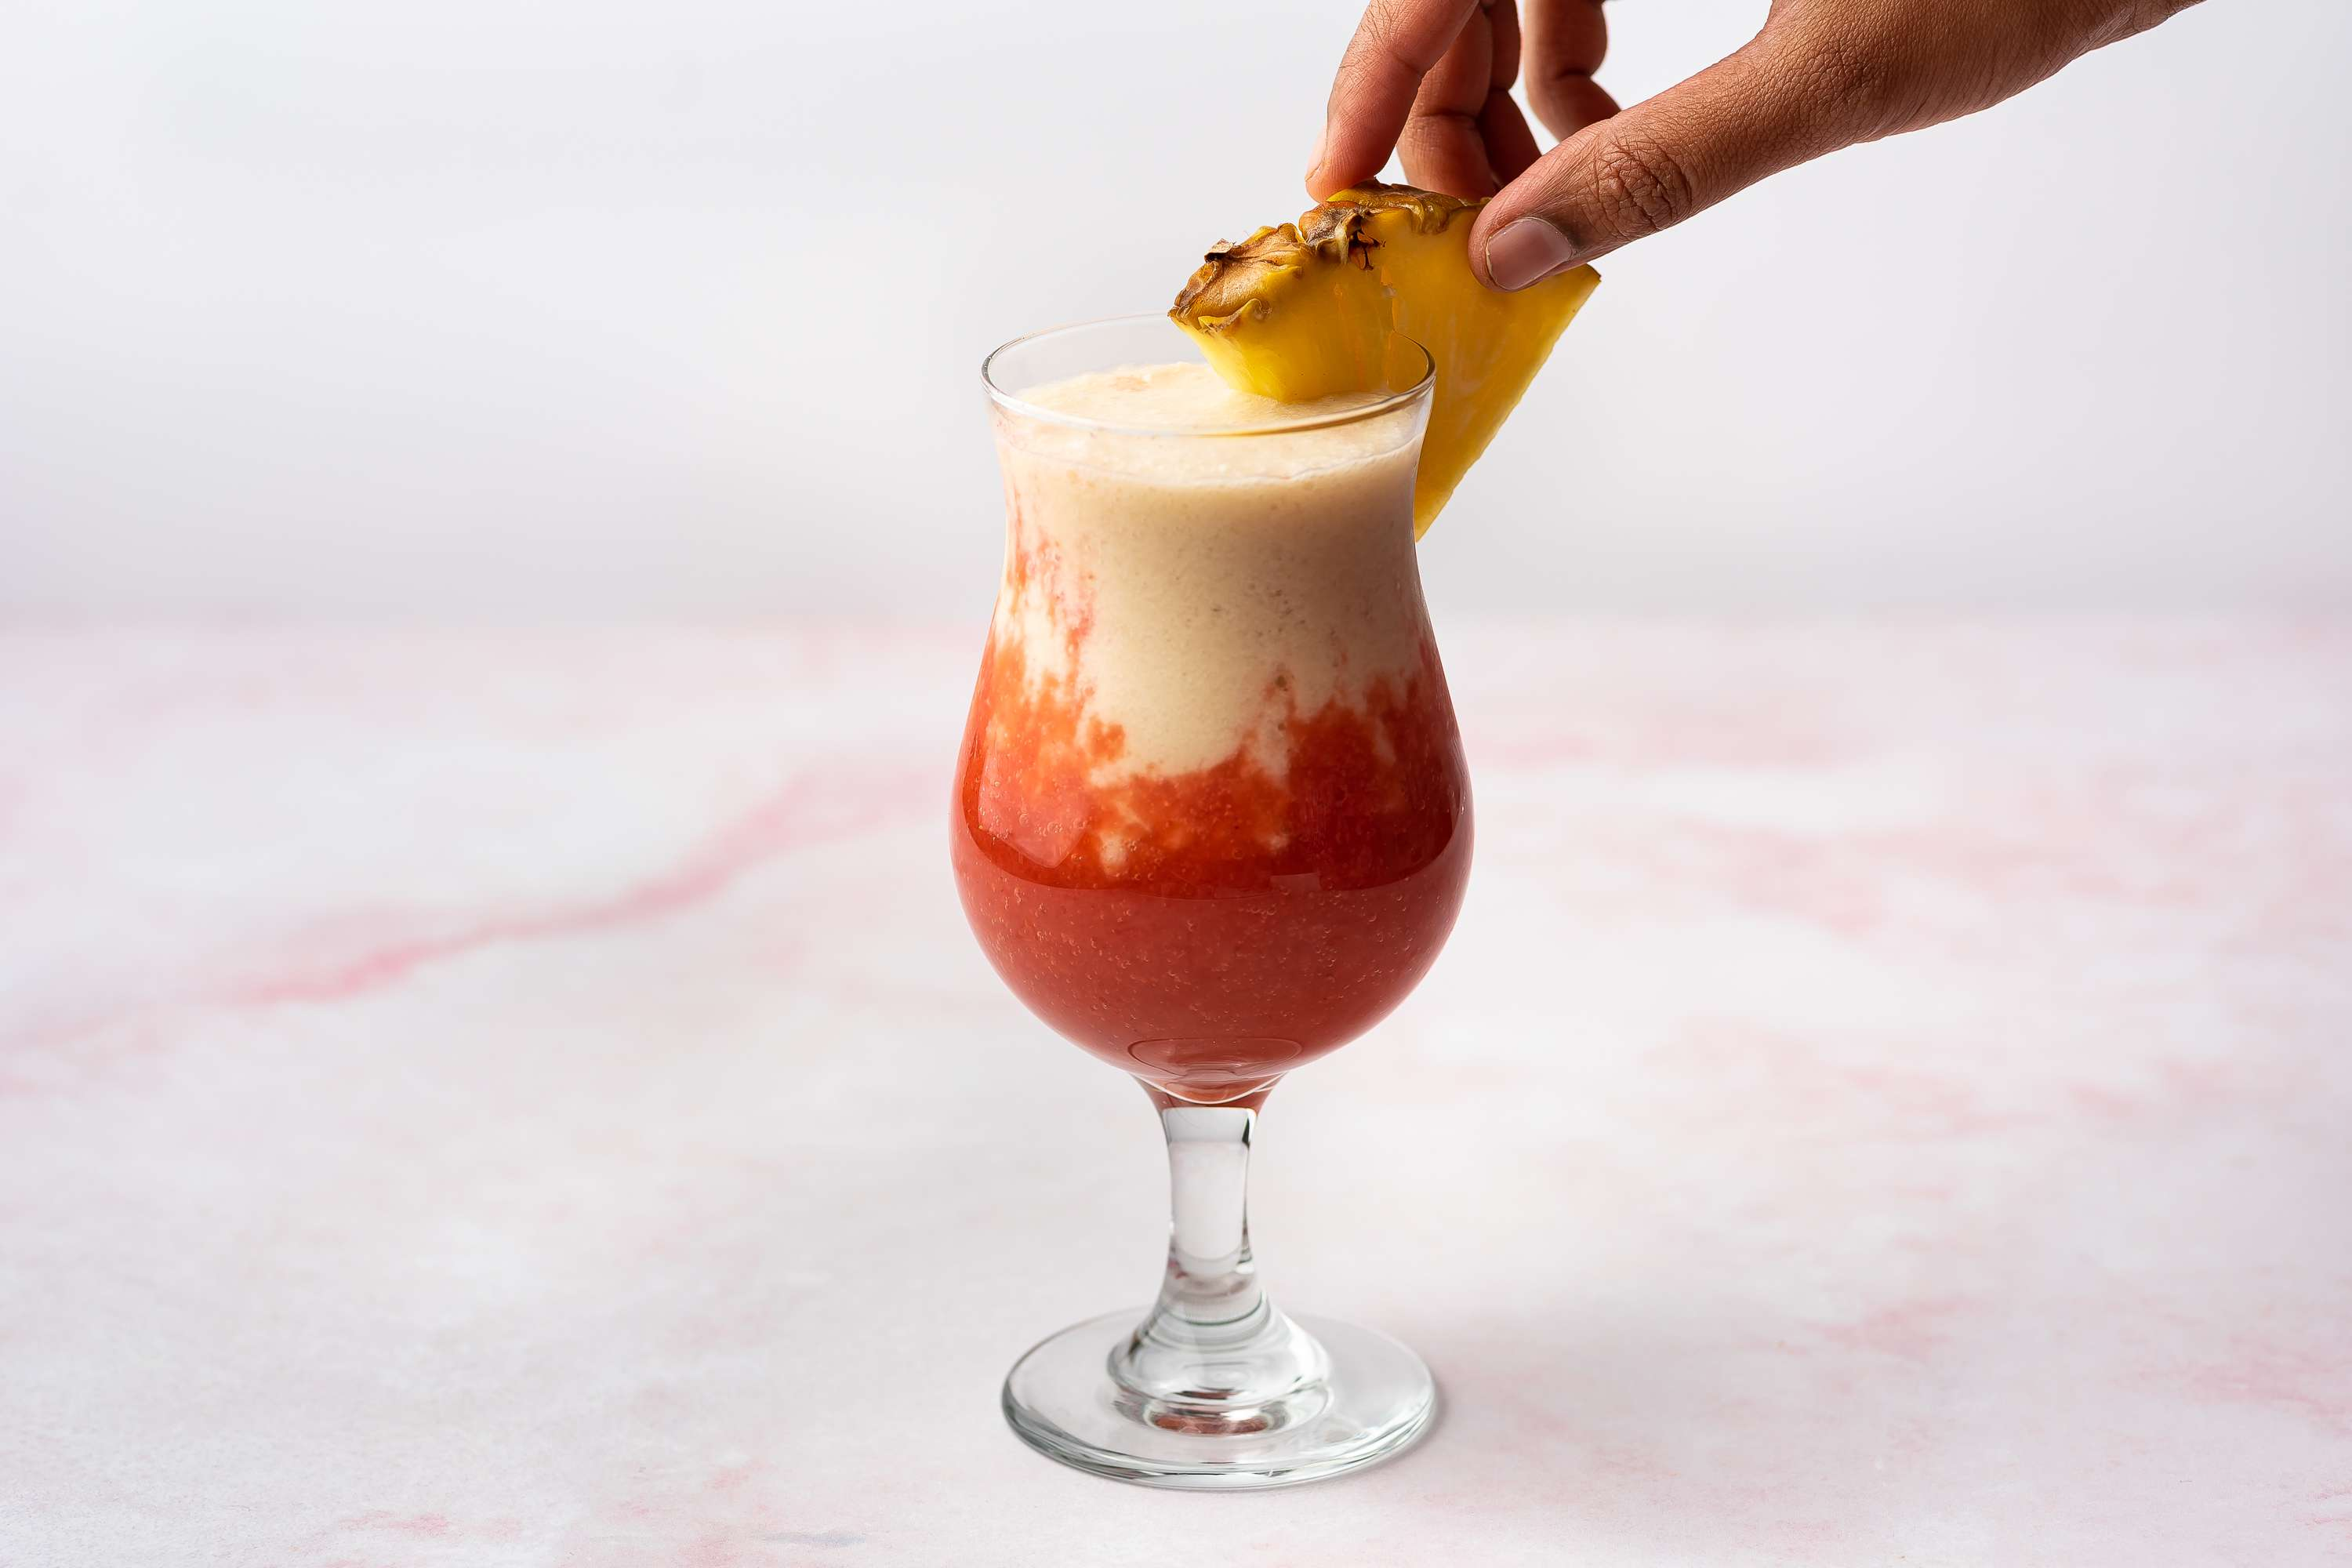 Lava Flow Hawaiian Tropical Drink in a glass garnished with pineapple